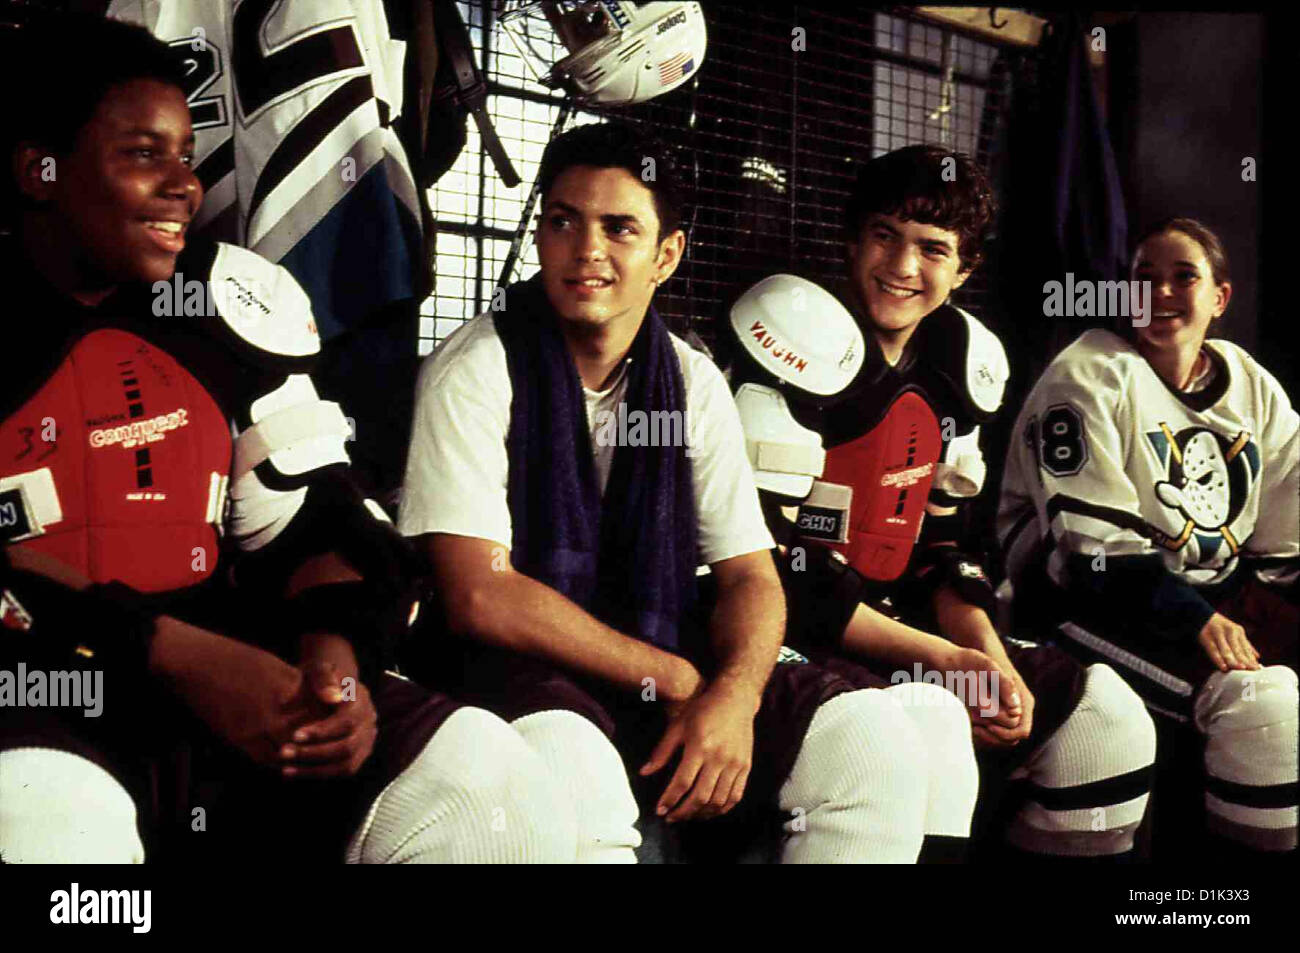 Mighty Ducks 3 - Jetzt Mischen Sie Die Highschool Auf  D3: Mighty Ducks  Russ (Keanan Thompson), Luis (Mike Vitar), - Stock Image